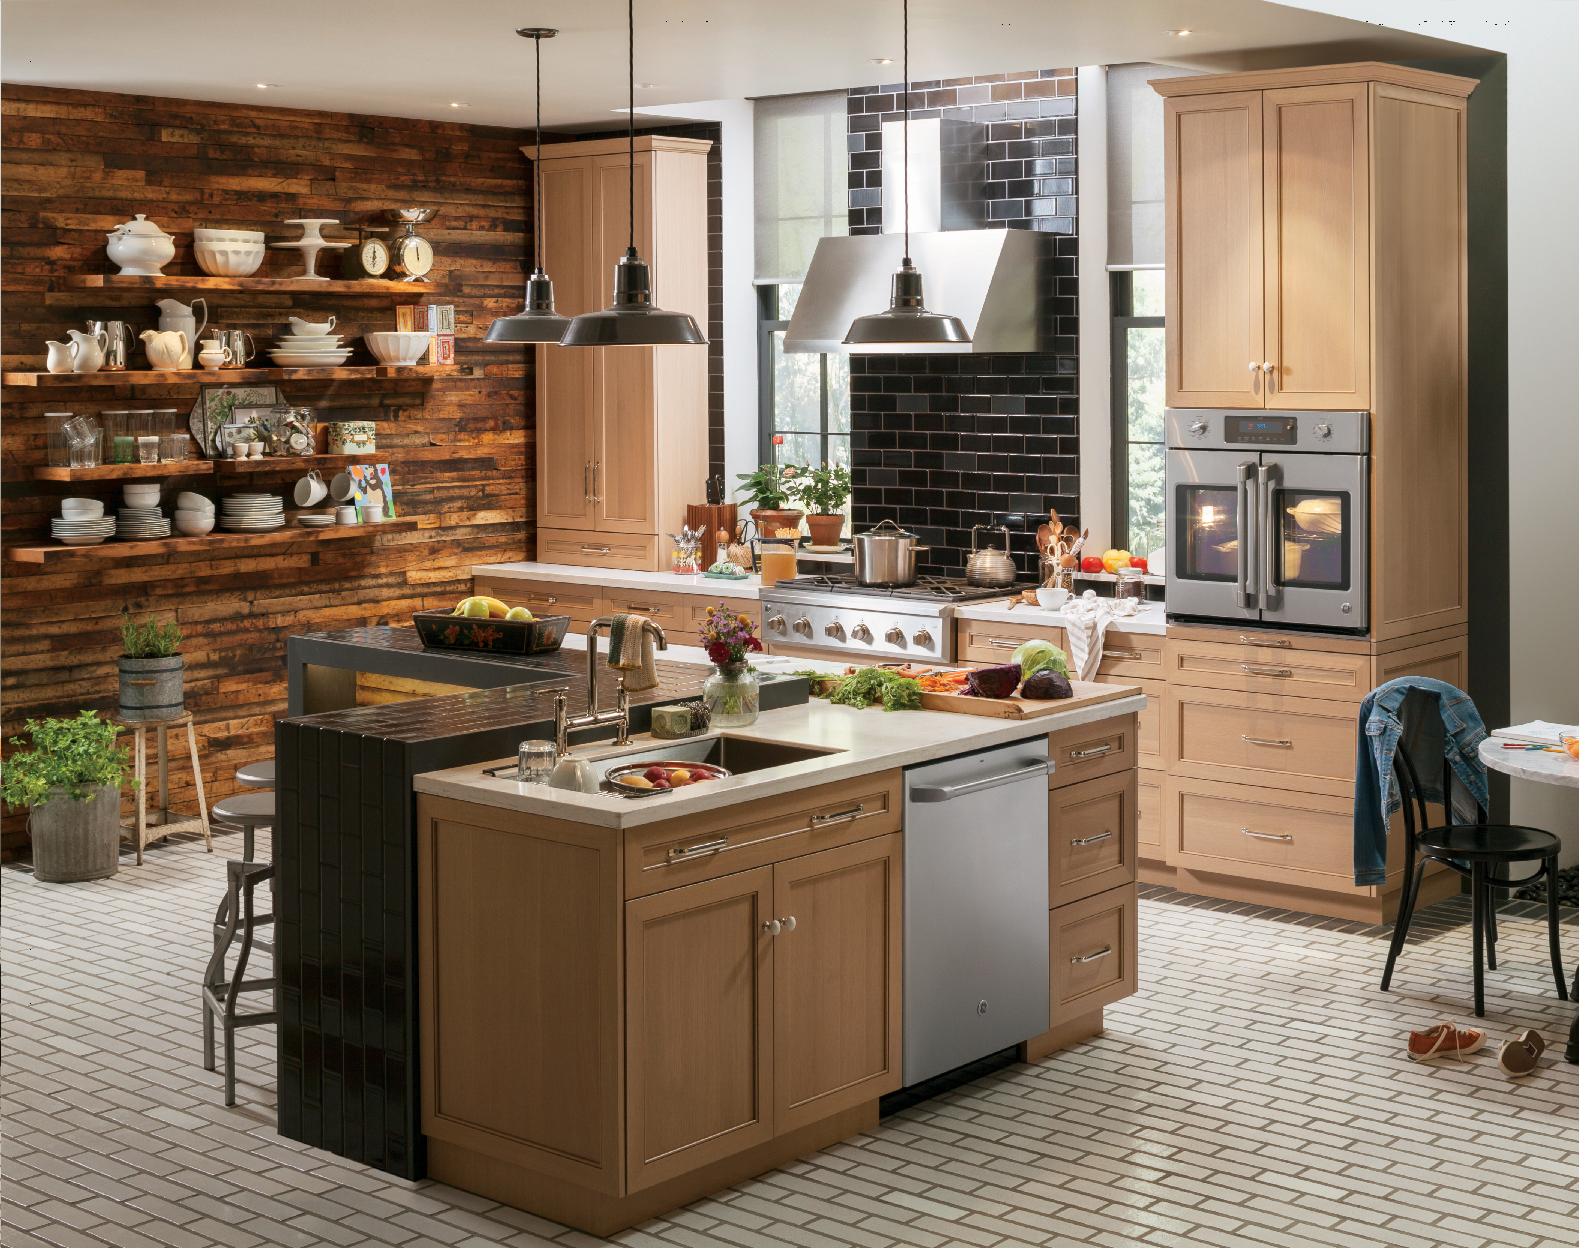 Uncategorized Win Kitchen Appliances builders are building more and growing with ge appliances full size